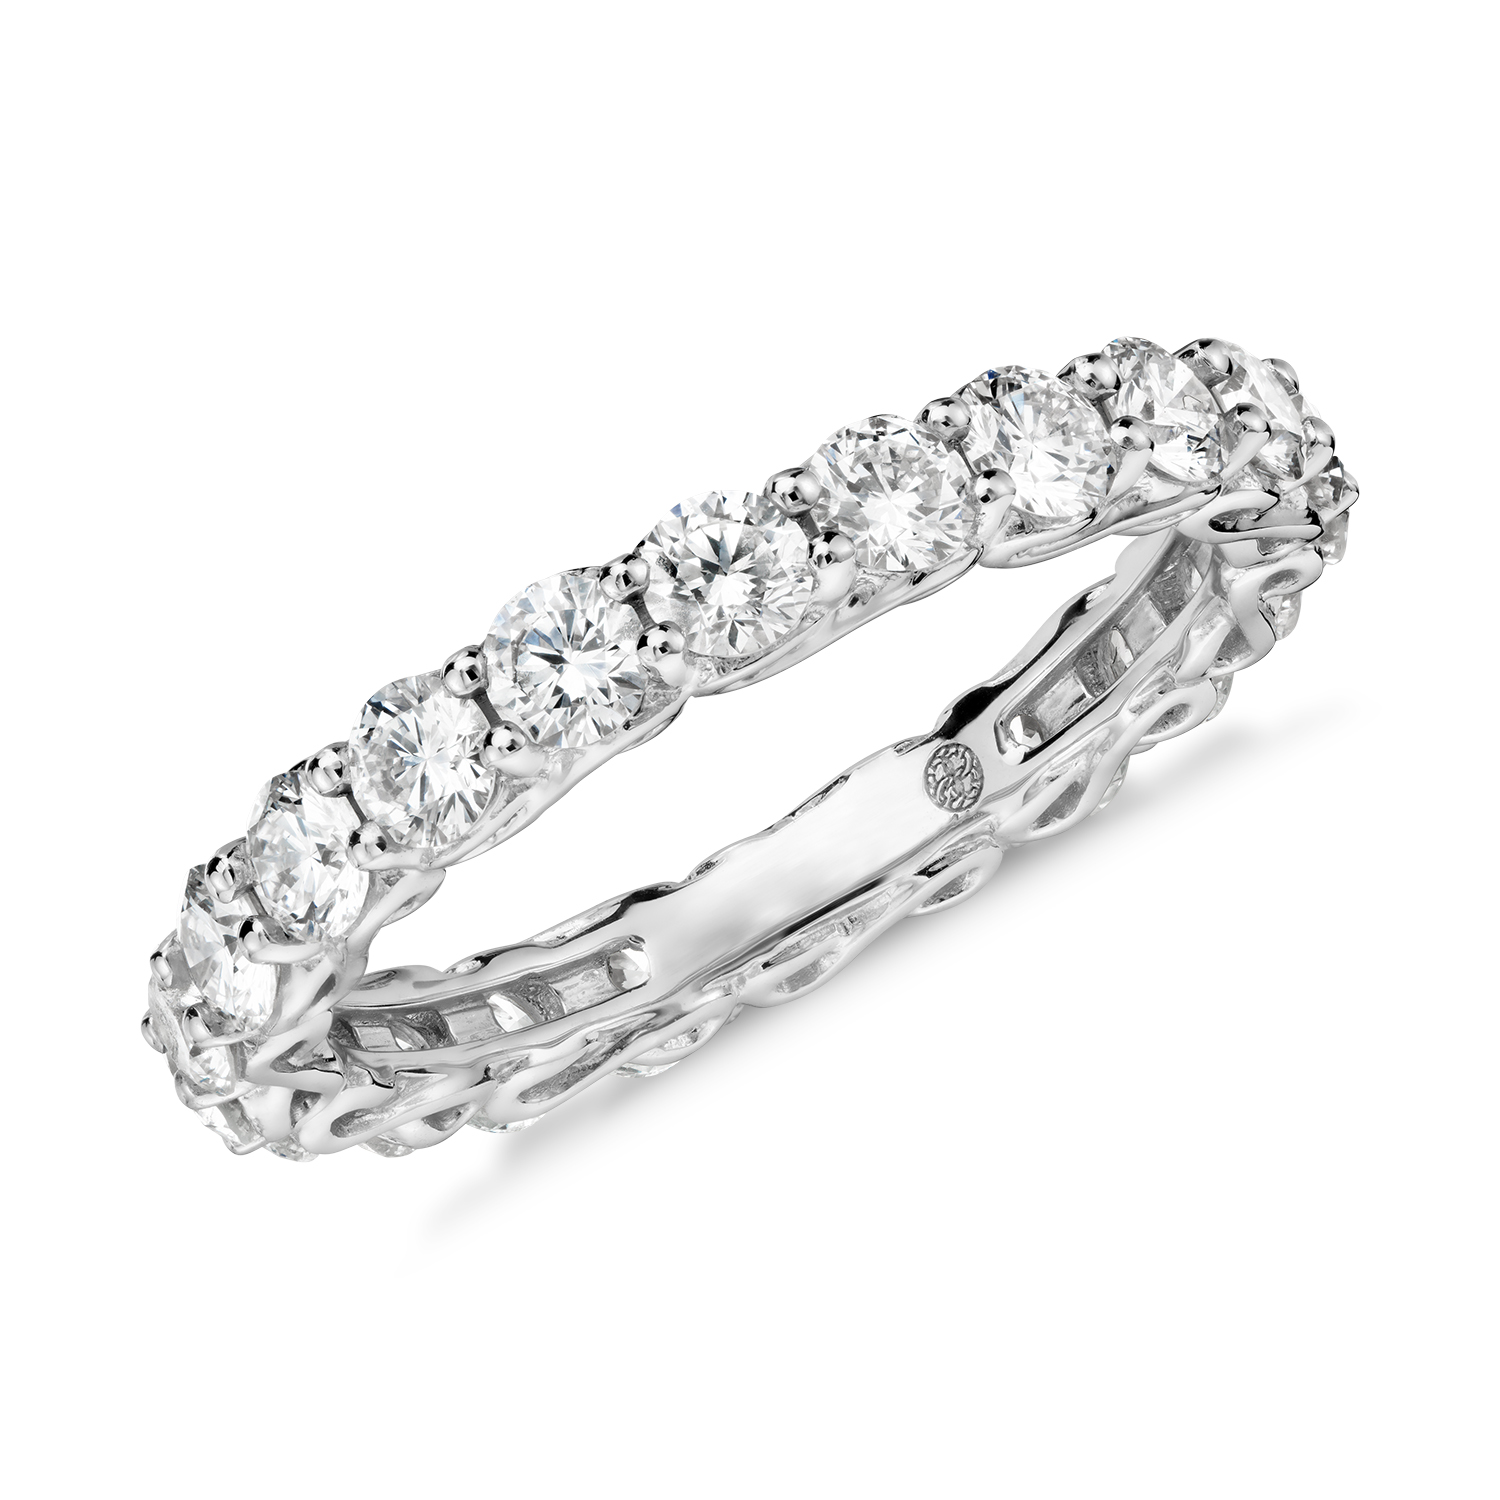 53778_Colin Cowie Infinity Diamond Eternity Ring in Platinum (2 ct. tw.).jpg